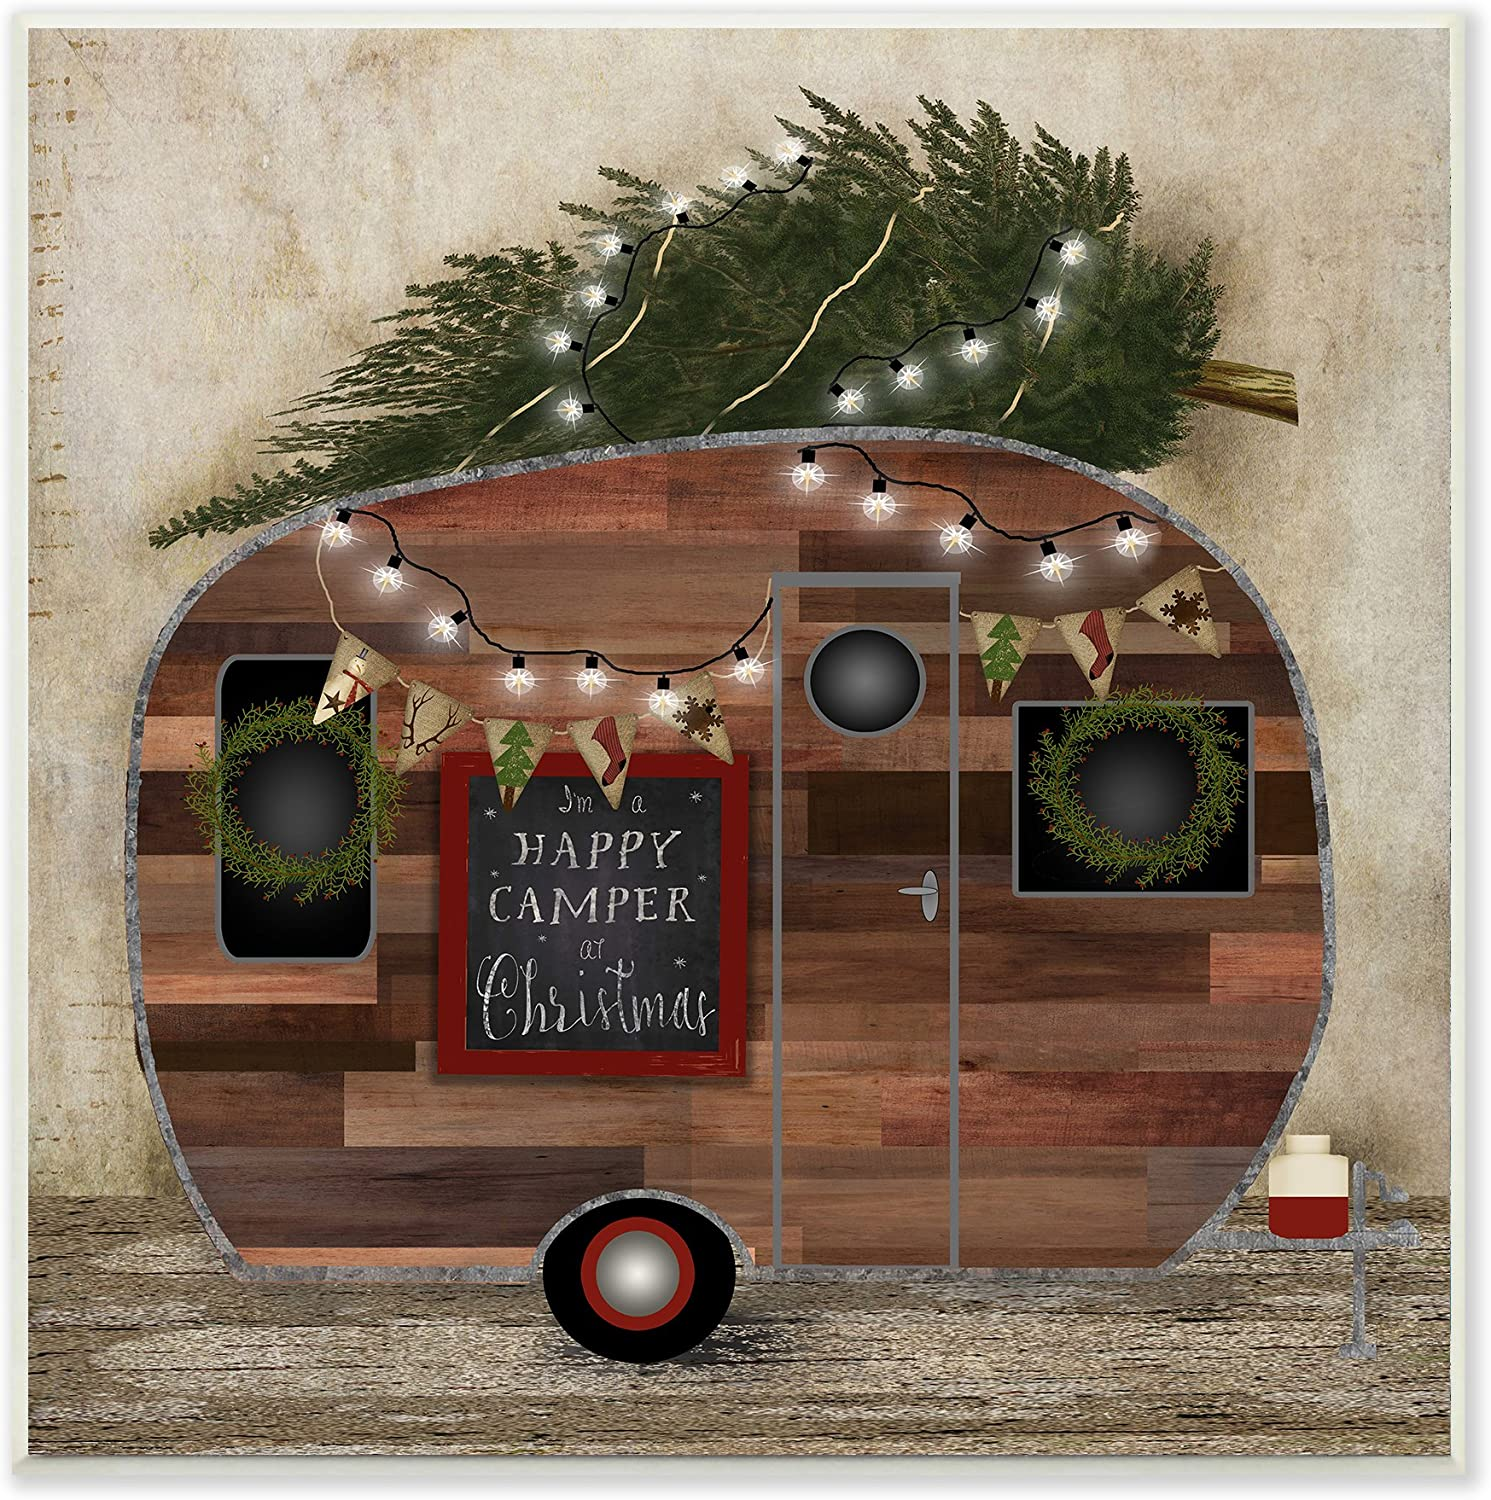 Stupell Home Décor Happy Camper At Christmas Wall Plaque Art, 12 x 0.5 x 12, Proudly Made in USA